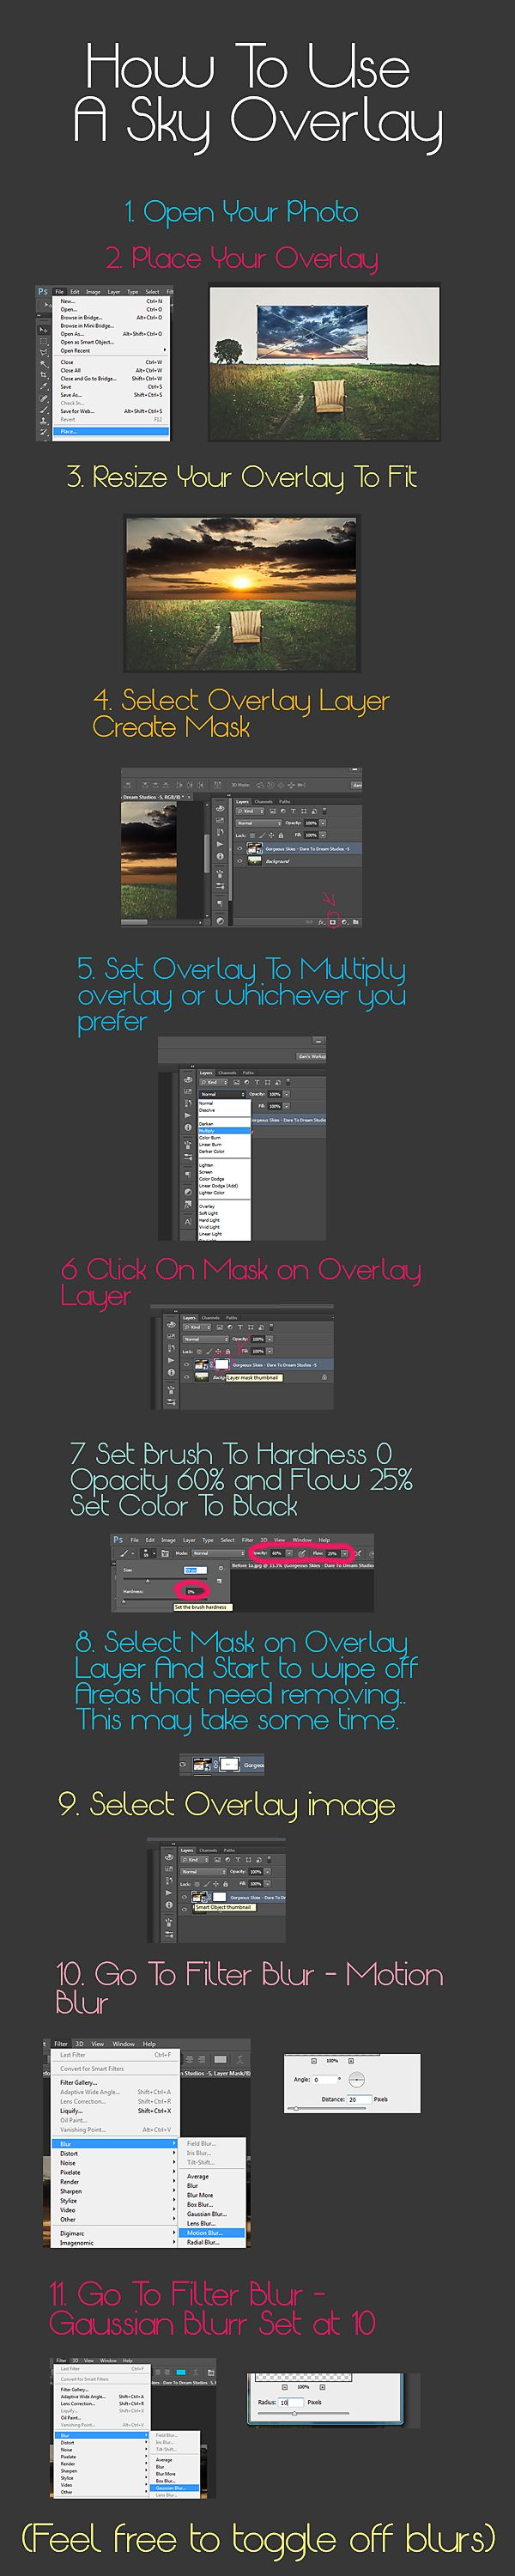 How To Use Use A Sky Overlay In Photoshop.